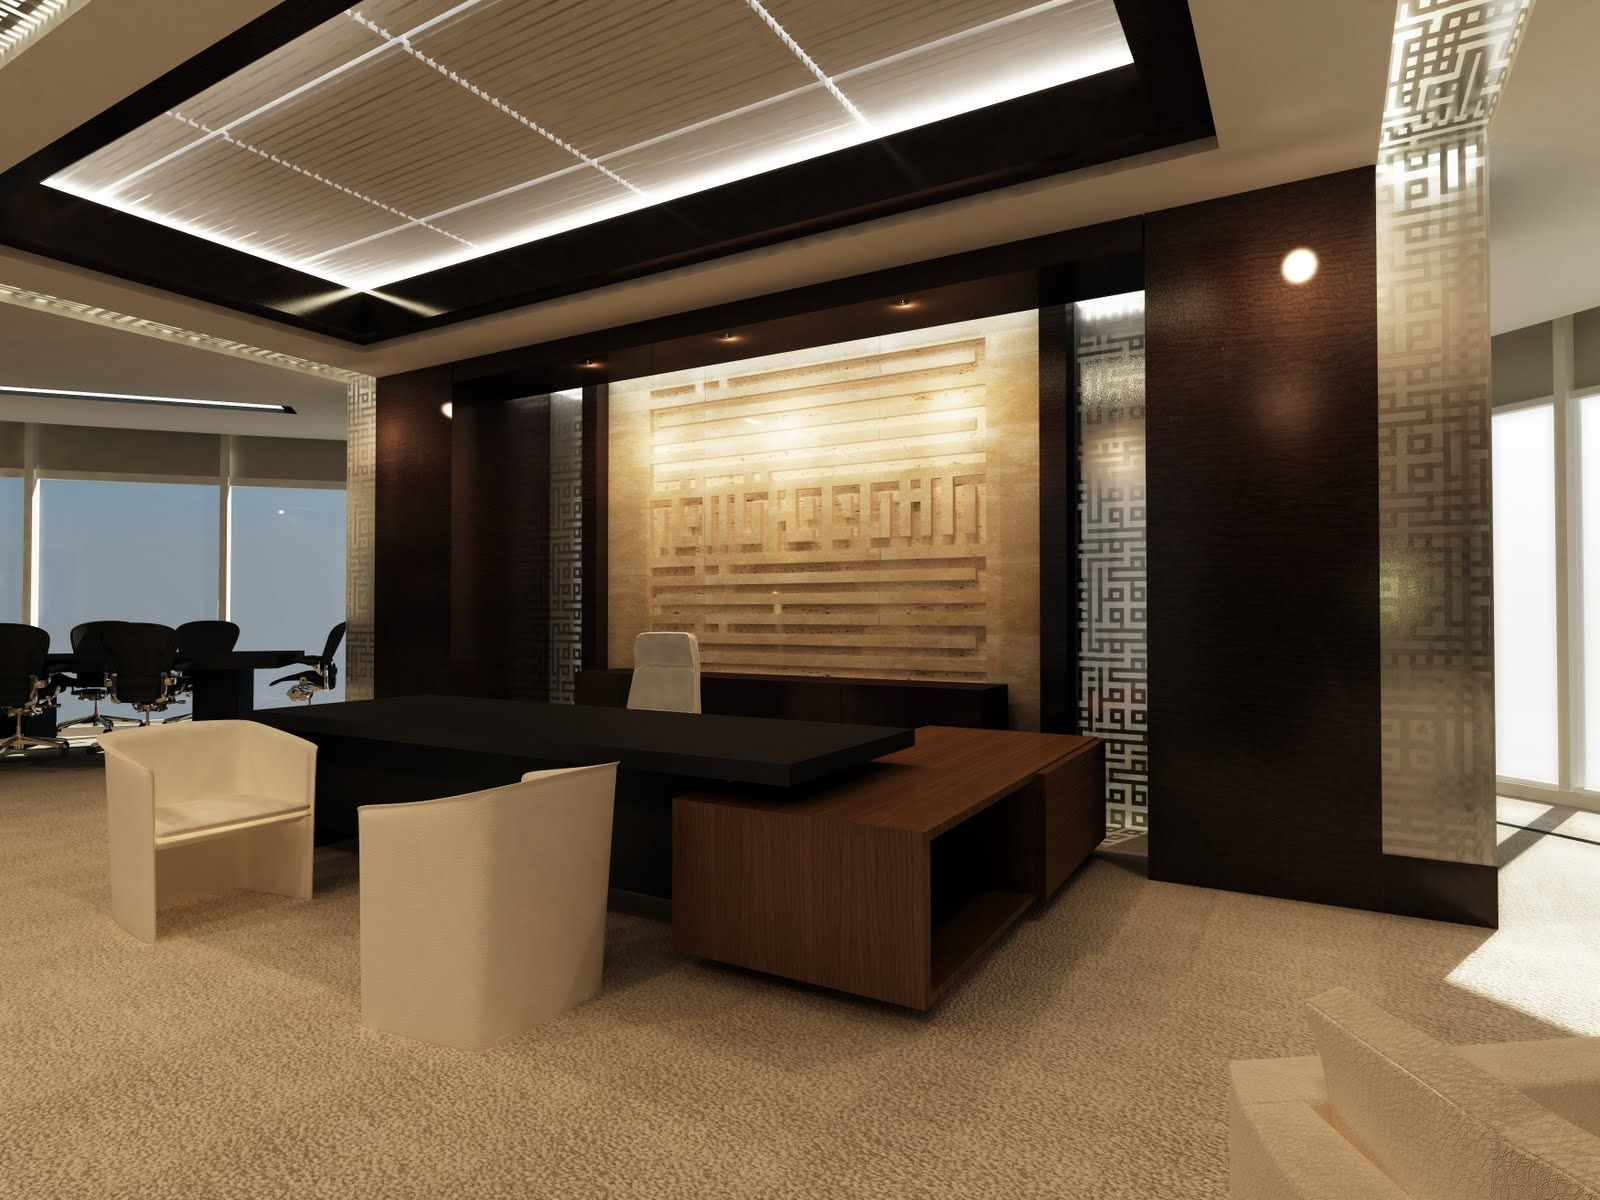 Office interior design intended for office interior design for Best executive office design